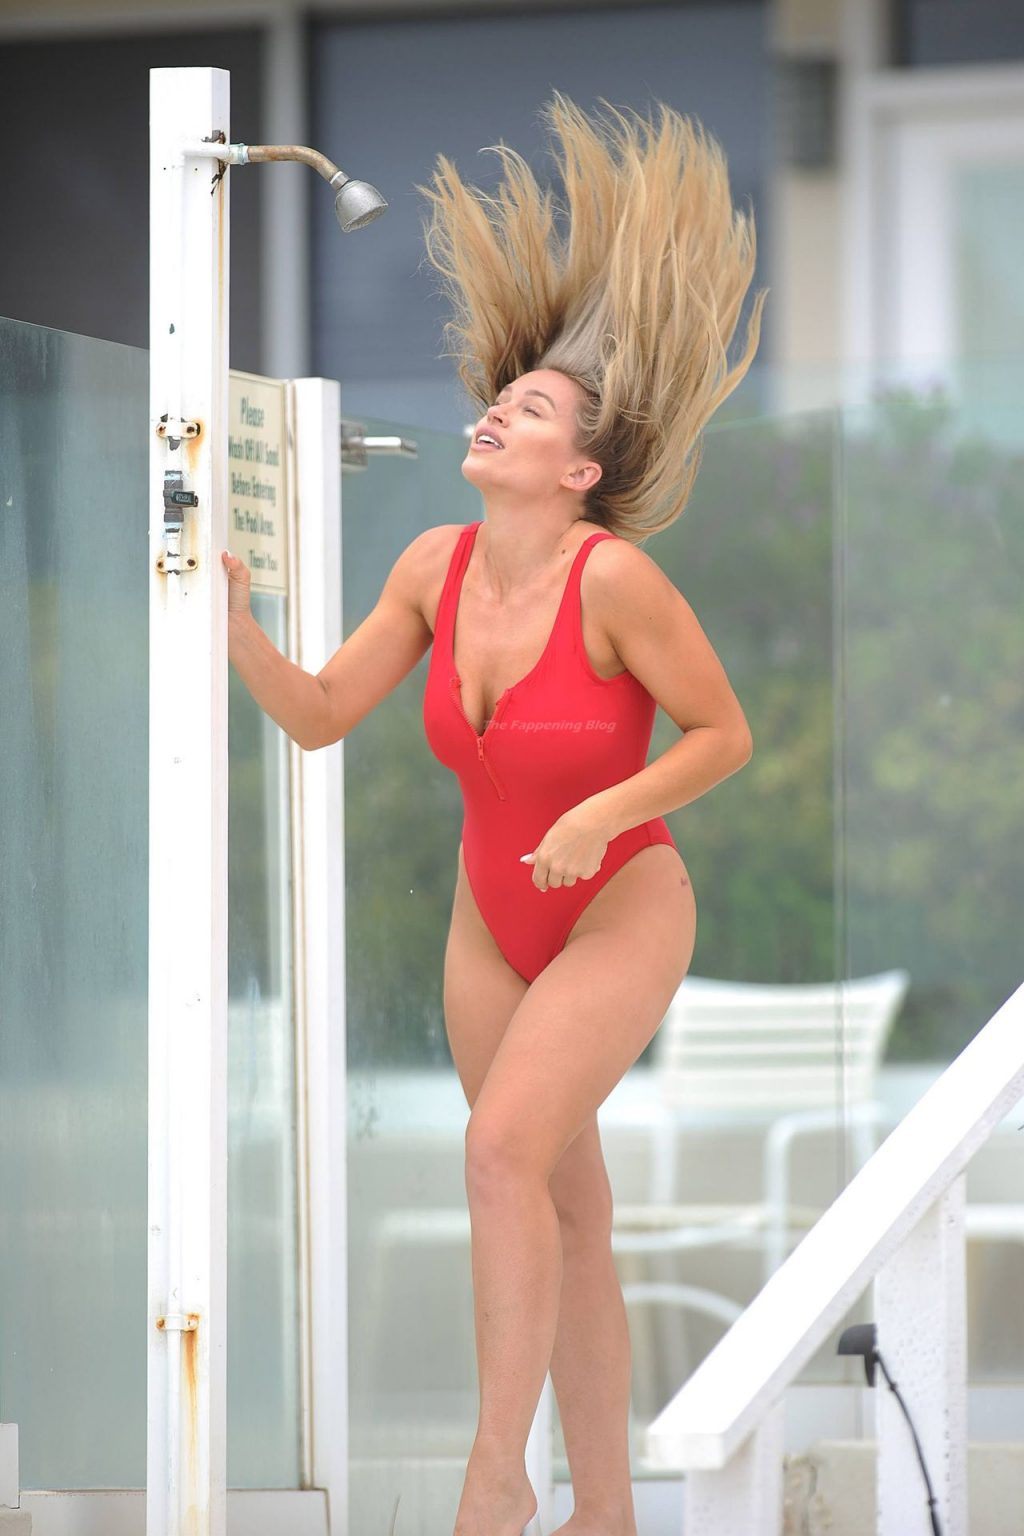 Kristen Louelle Gaffney Poses at The Beach in Malibu (38 Photos)